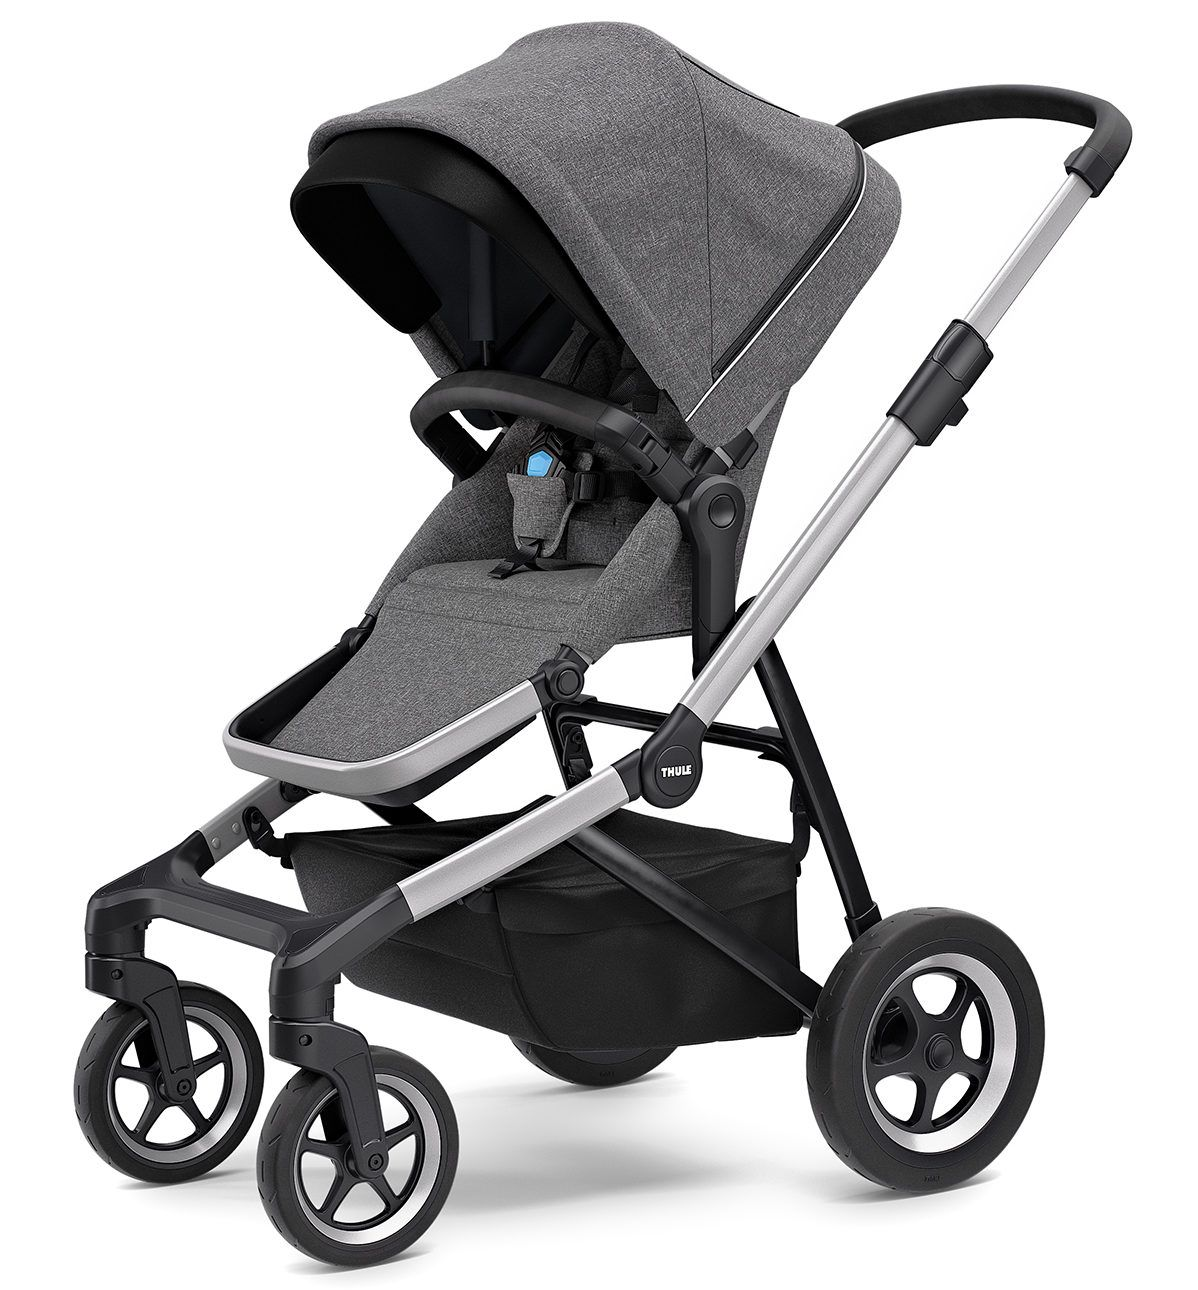 Top 5 Baby Gear Trends for 2018 City stroller